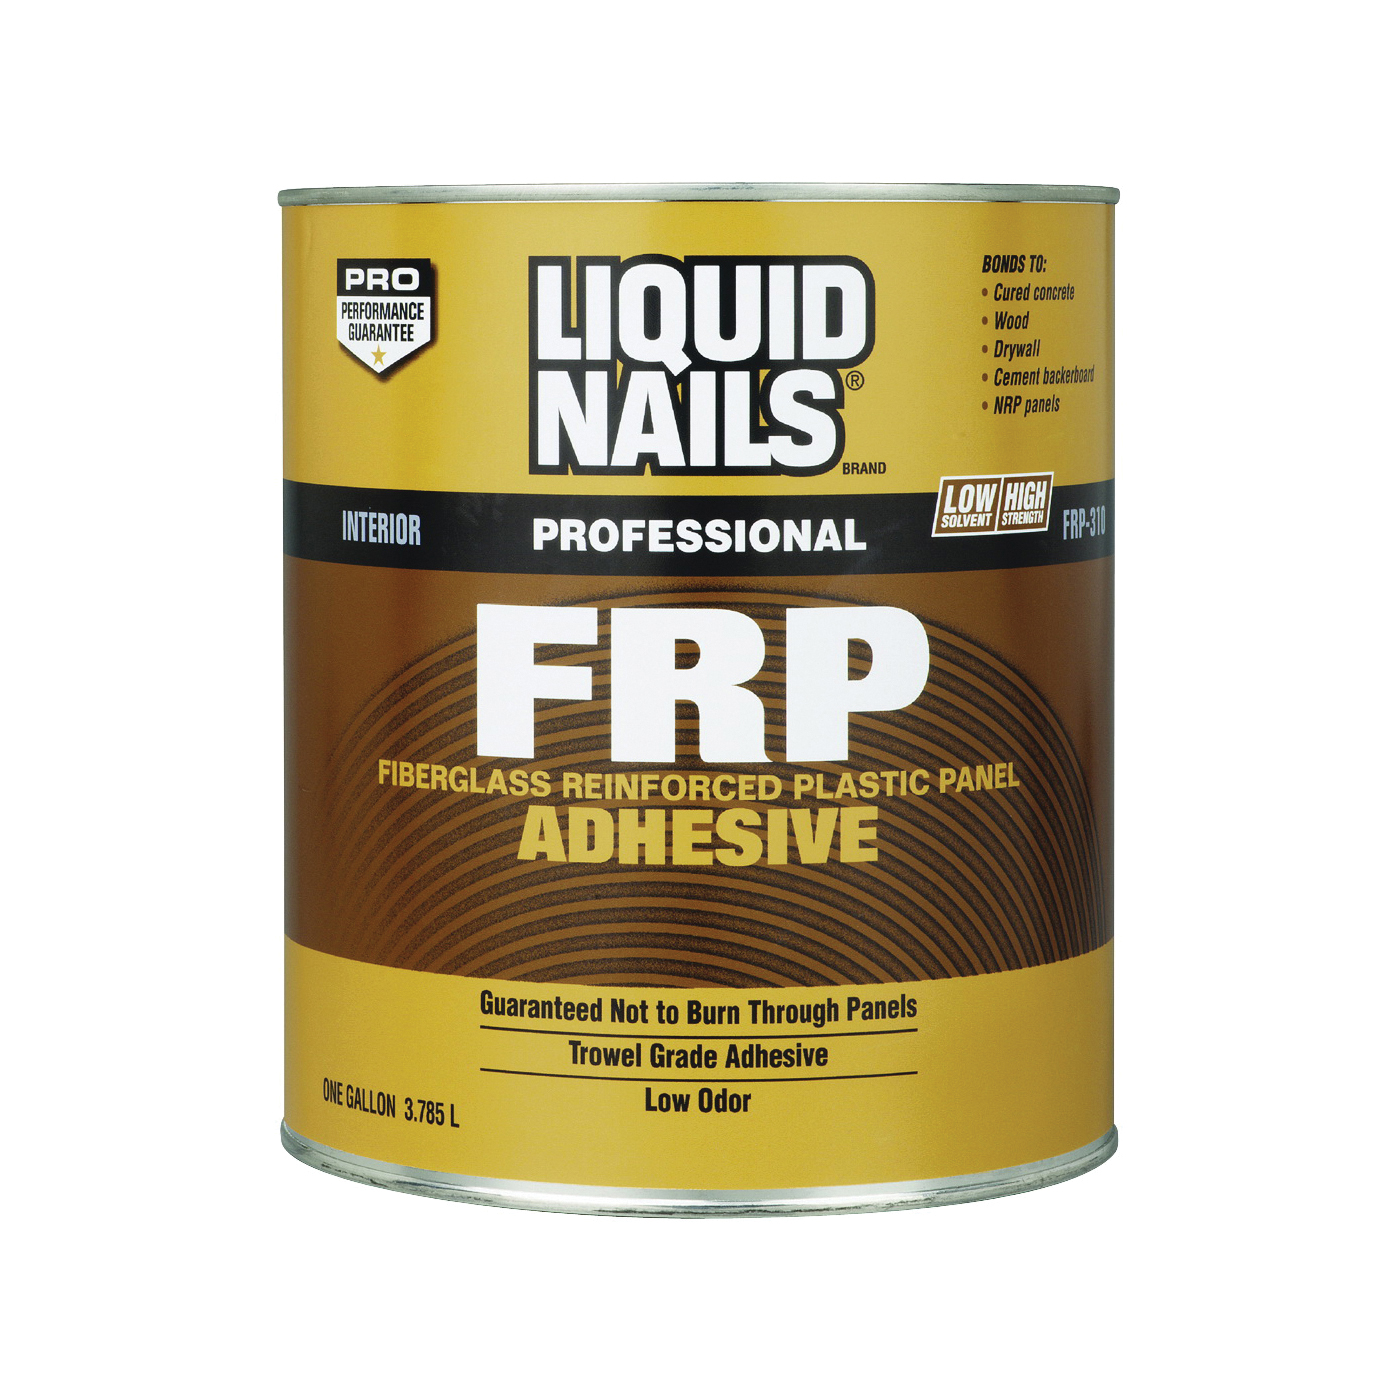 Picture of Liquid Nails FRP-310 Panel Adhesive, Off-White, 1 gal Package, Container